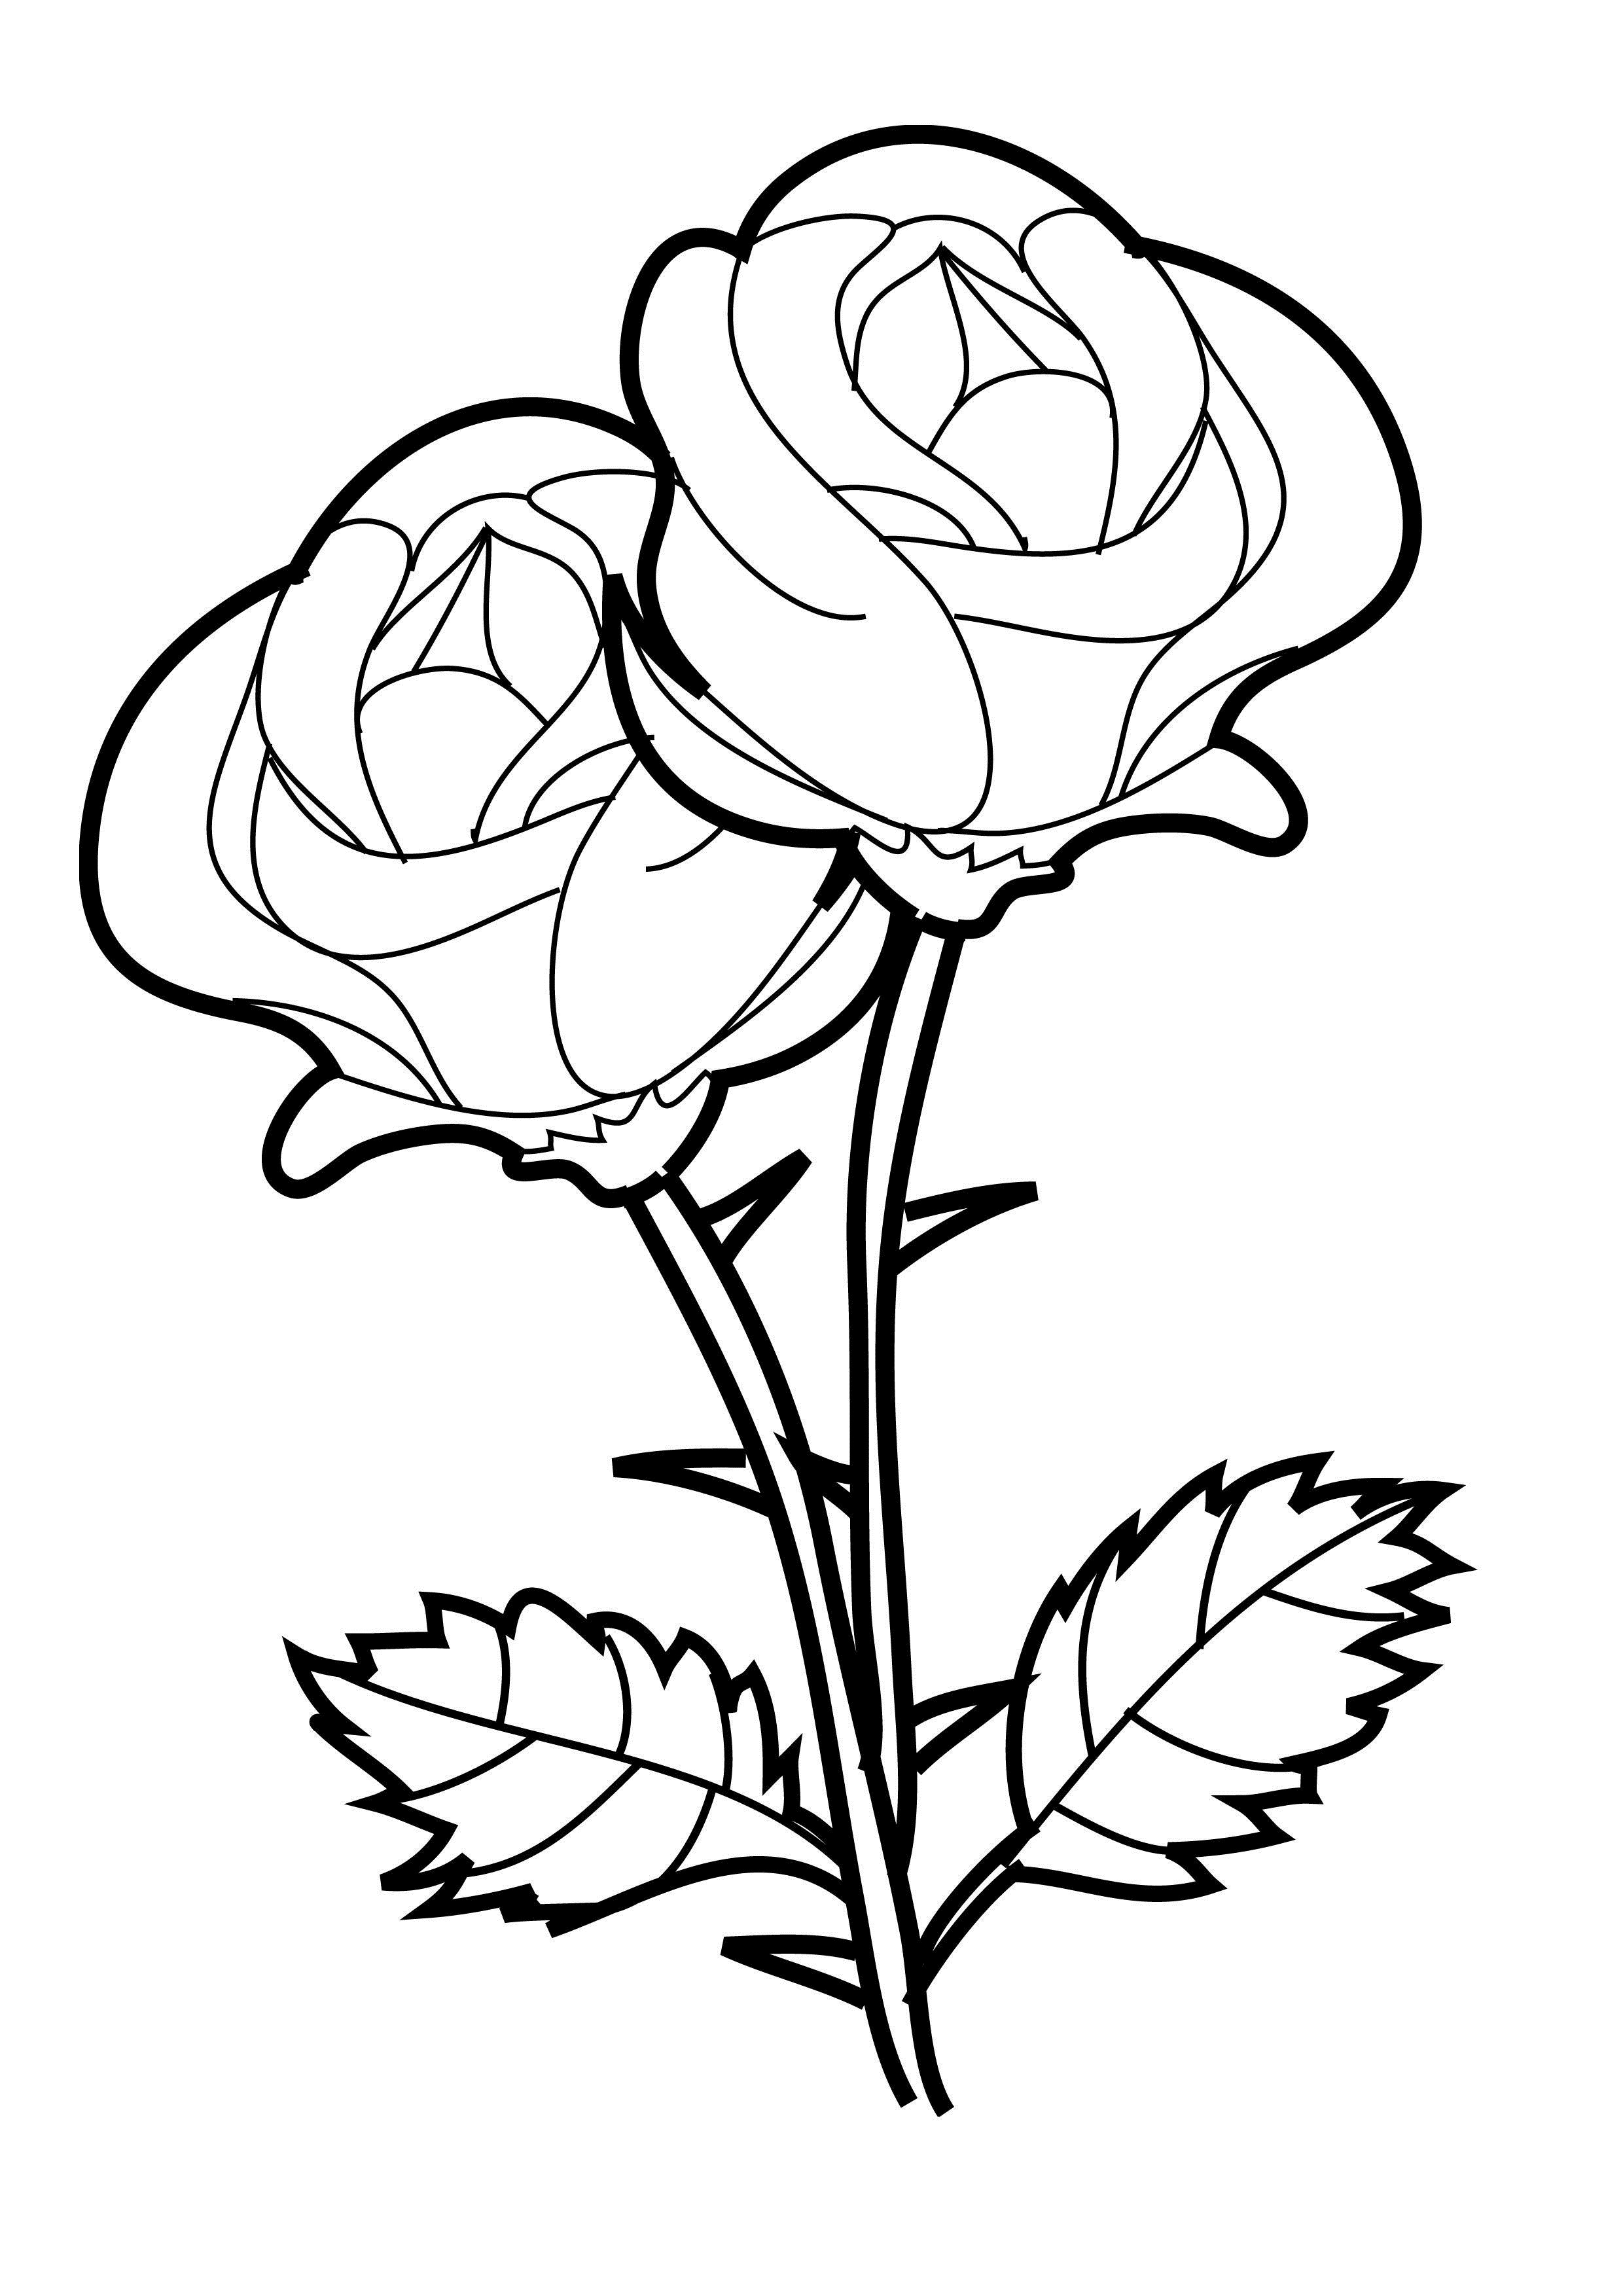 rose printable coloring pages free printable roses coloring pages for kids rose pages coloring printable